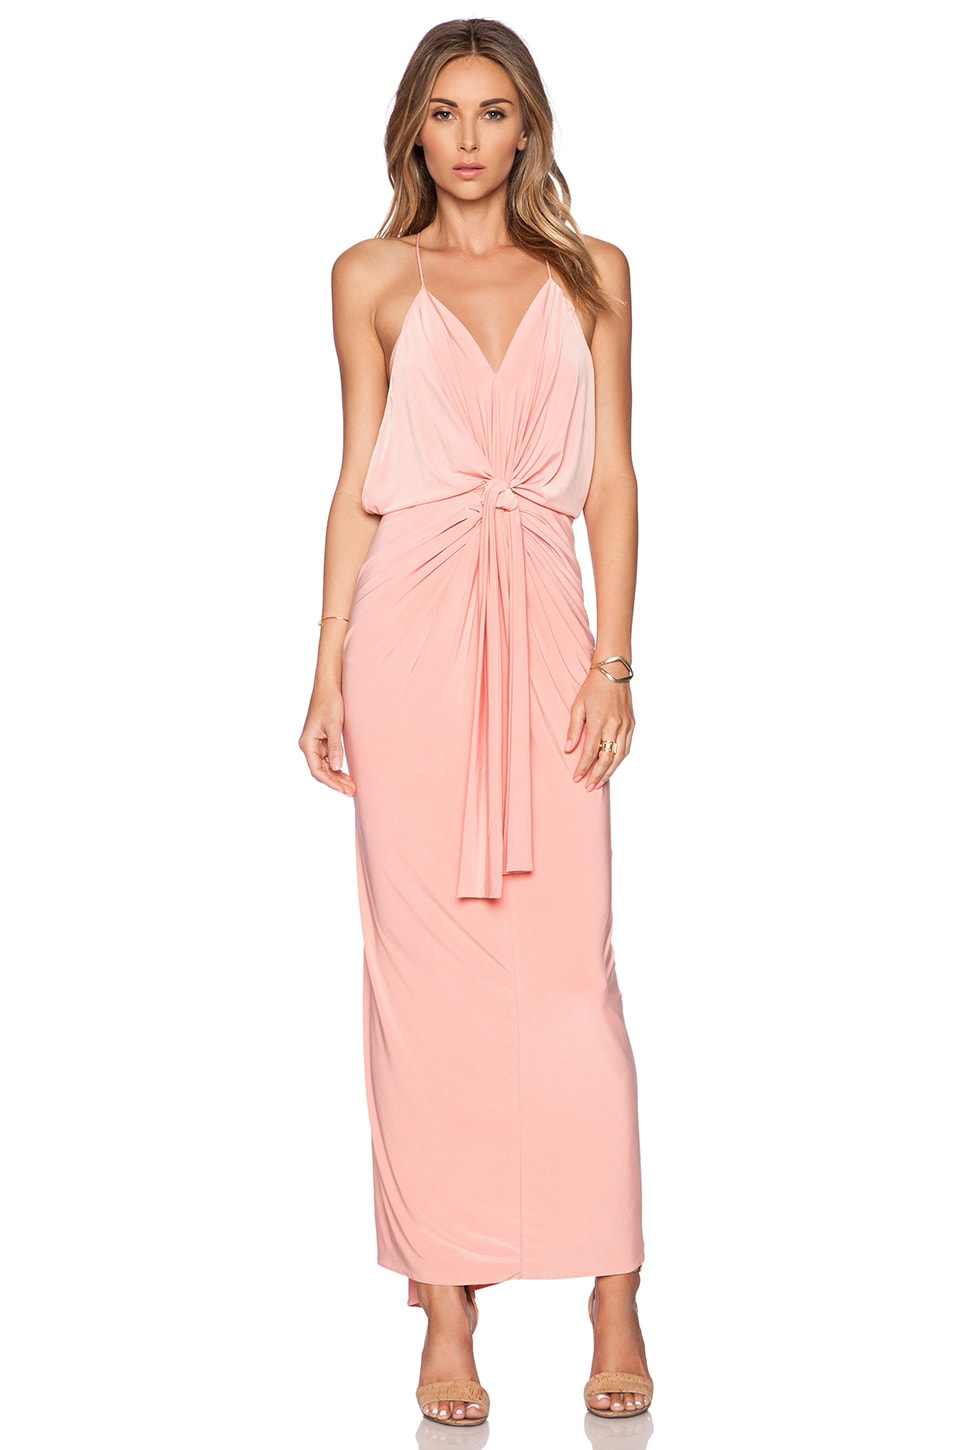 T-Bags LosAngeles T-Bags Domino Tie Front Maxi Dress in Blush ...